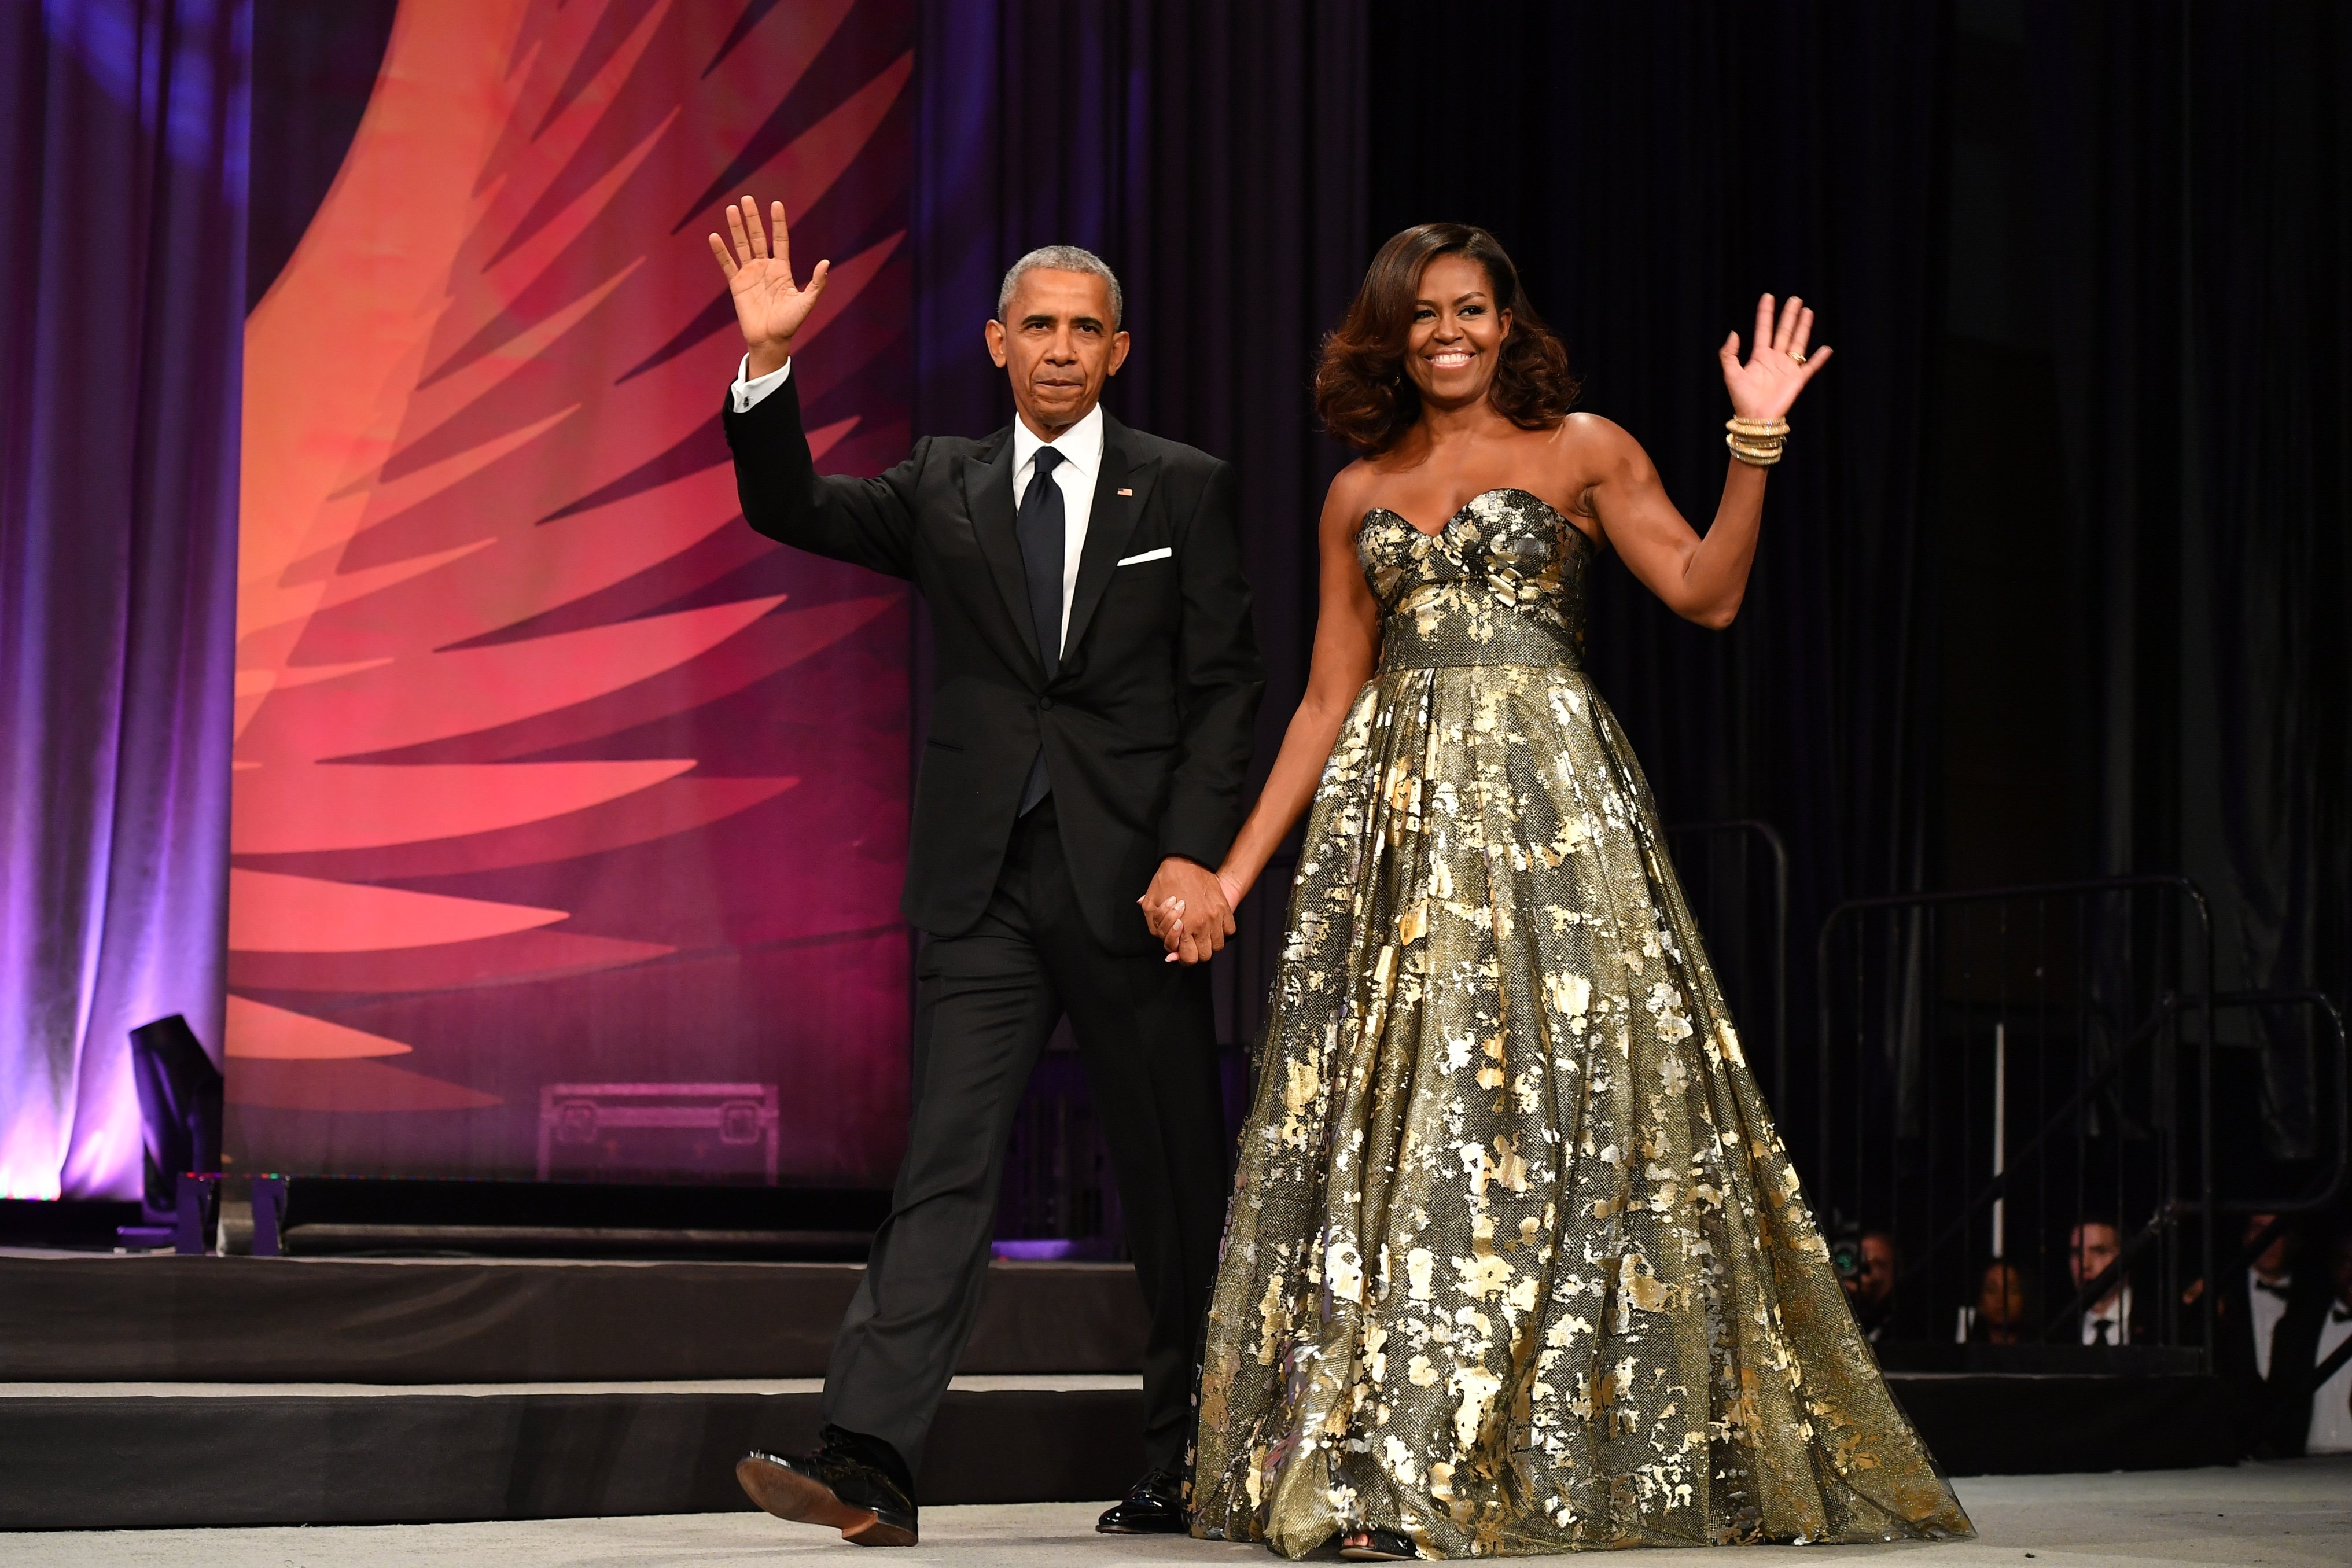 President Barack Obama and Michelle Obama arrive at the Phoenix Awards Dinner at Walter E. Washington Convention Center on September 17, 2016, in Washington, DC.   Source: Getty Images.